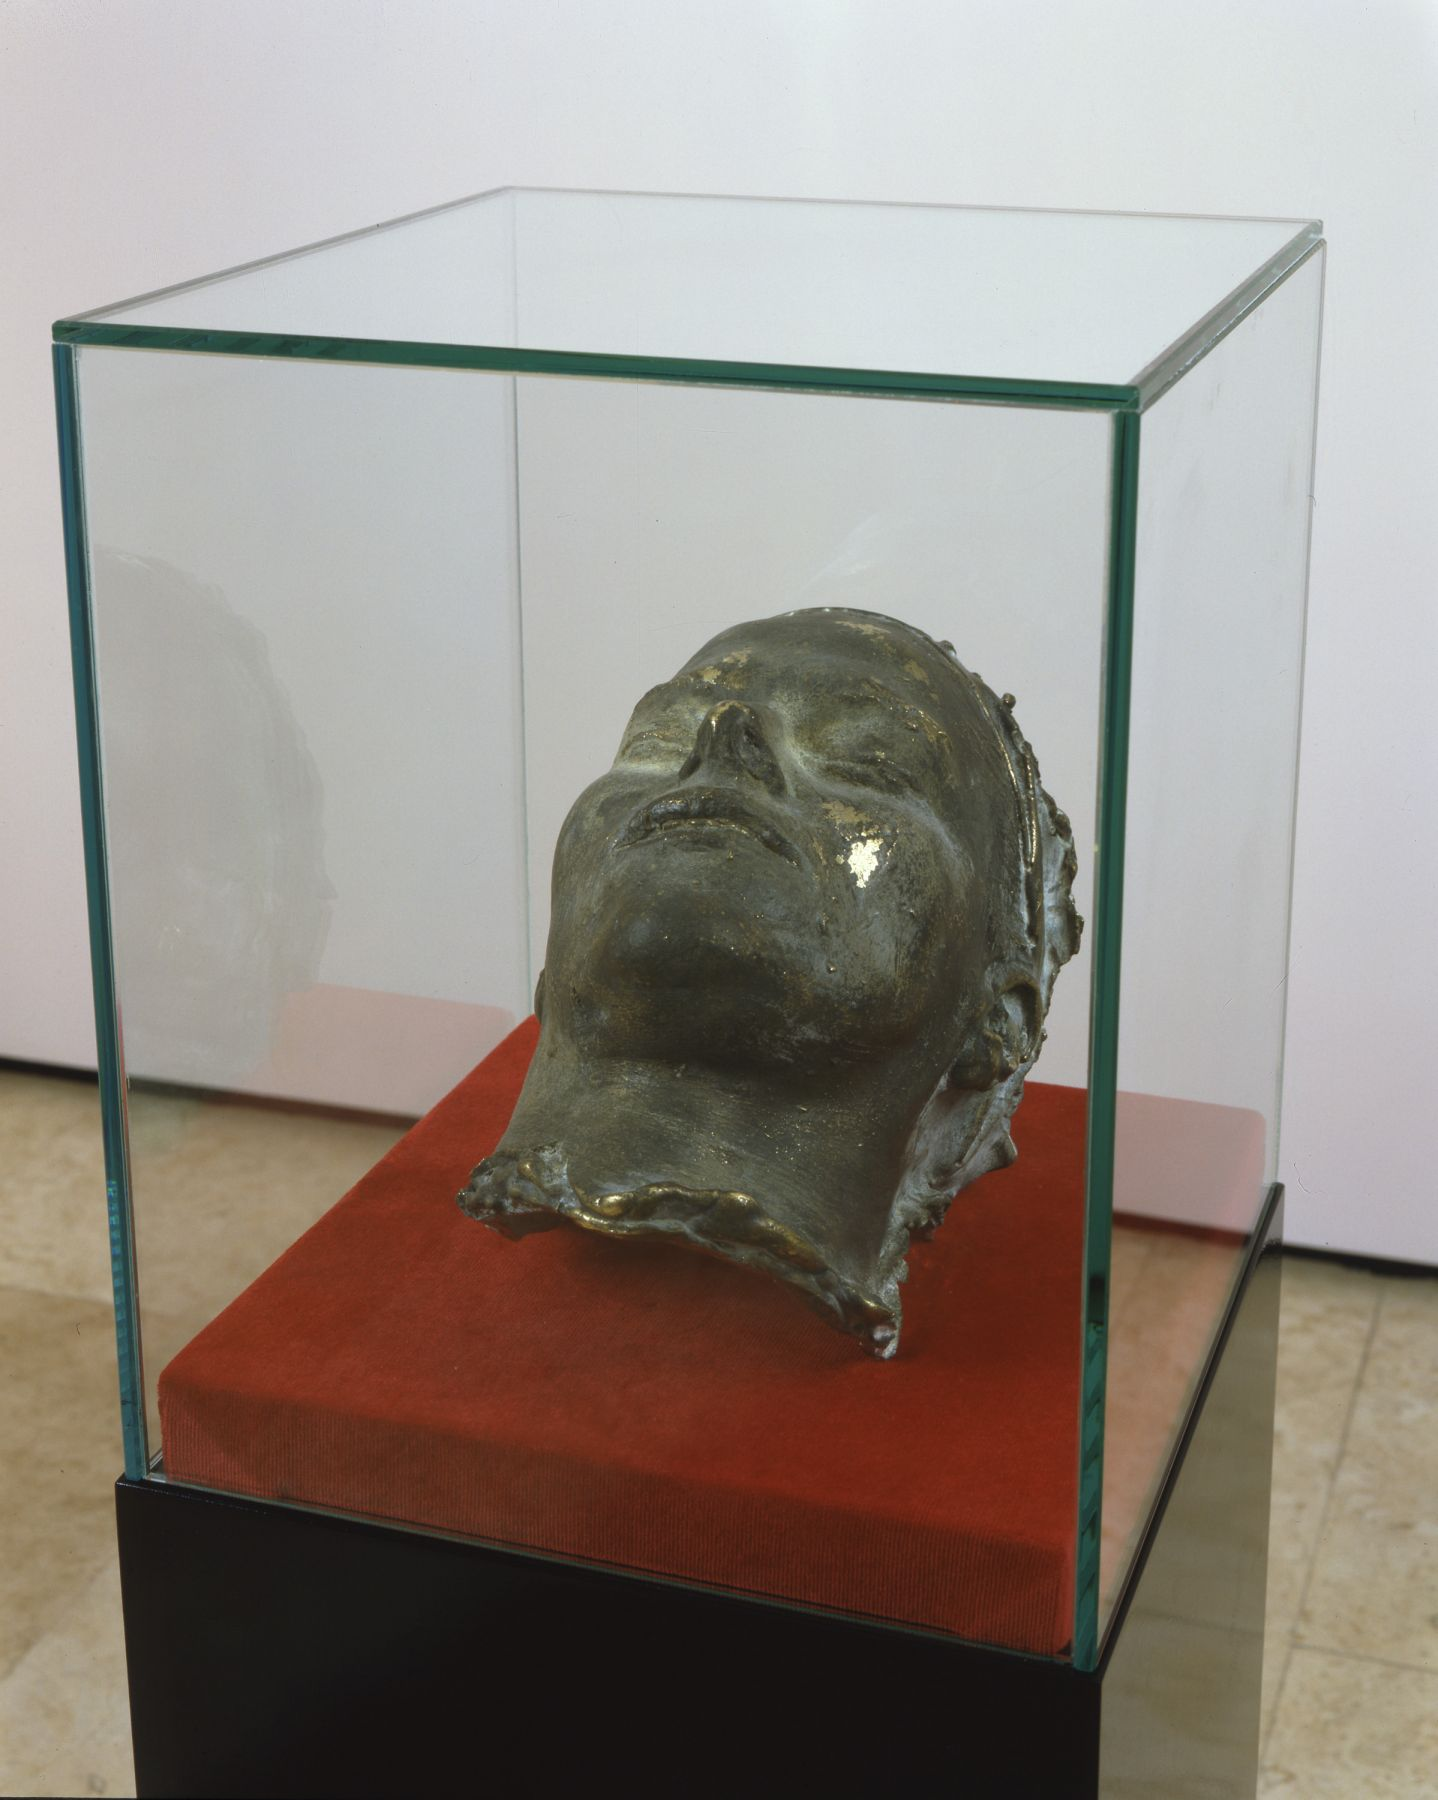 TRACEY EMIN, Death Mask, 2002